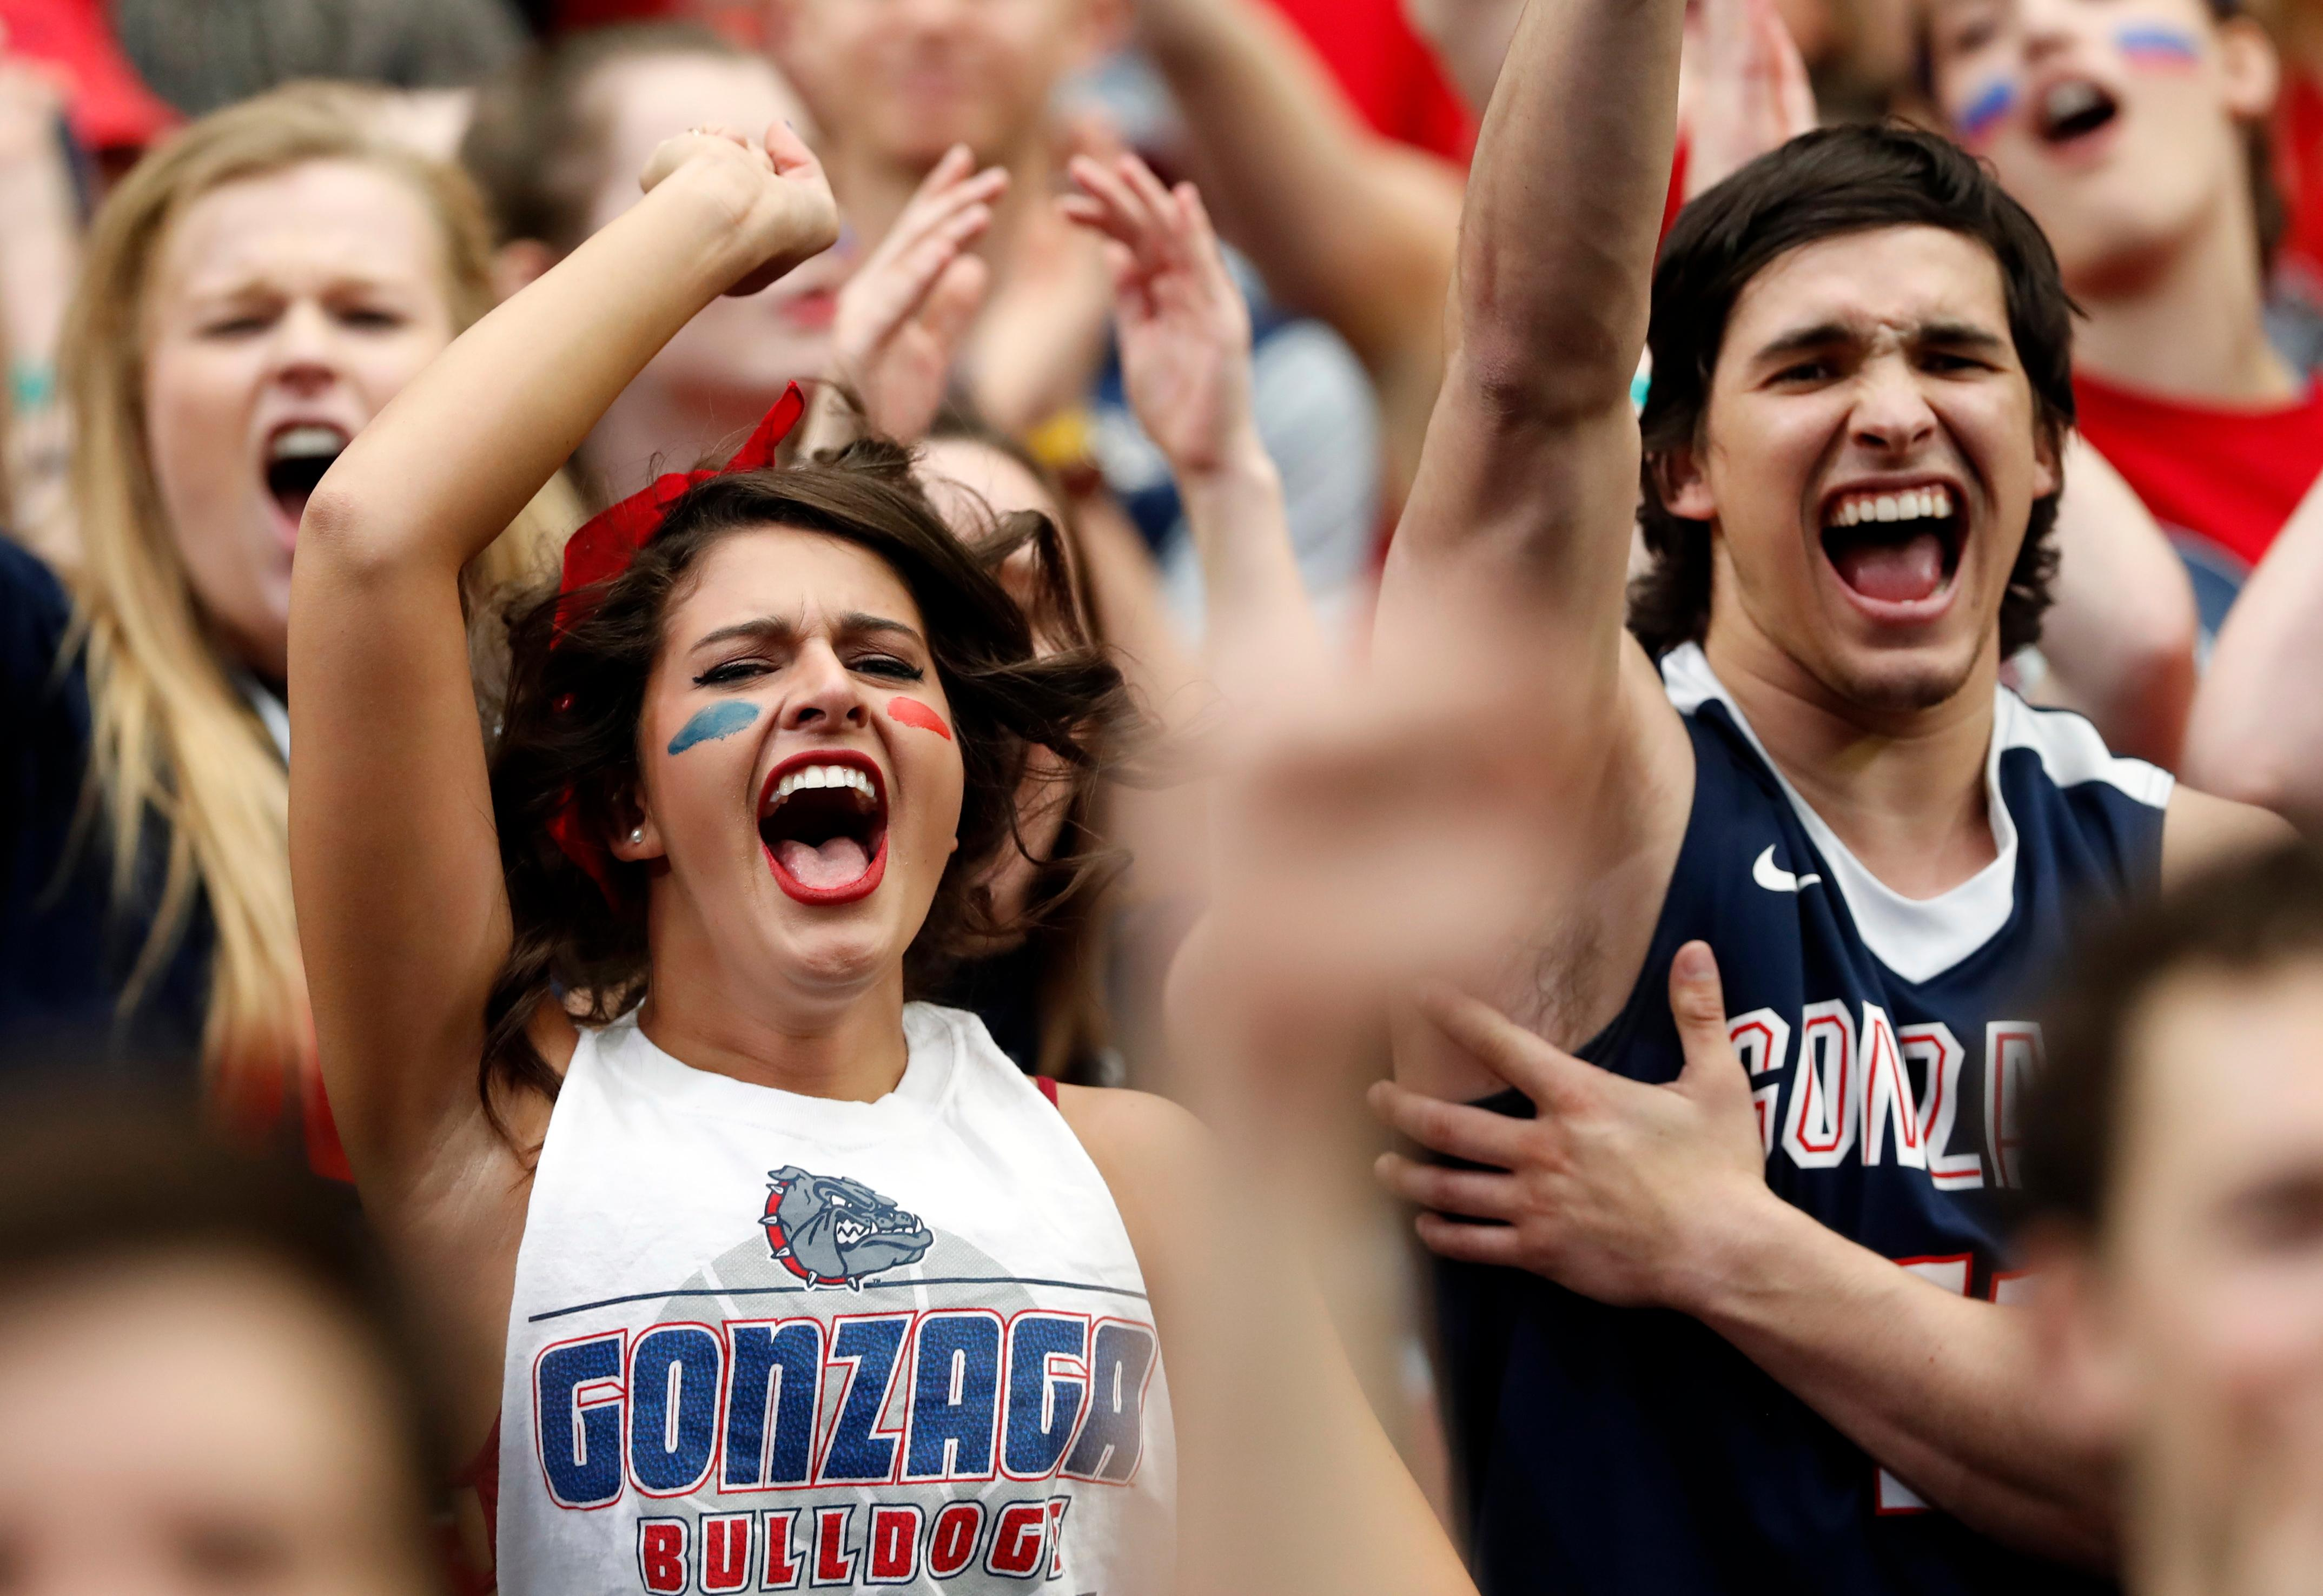 Fans cheer before the semifinals of the Final Four NCAA college basketball tournament between South Carolina and Gonzaga, Saturday, April 1, 2017, in Glendale, Ariz. (AP Photo/Matt York)